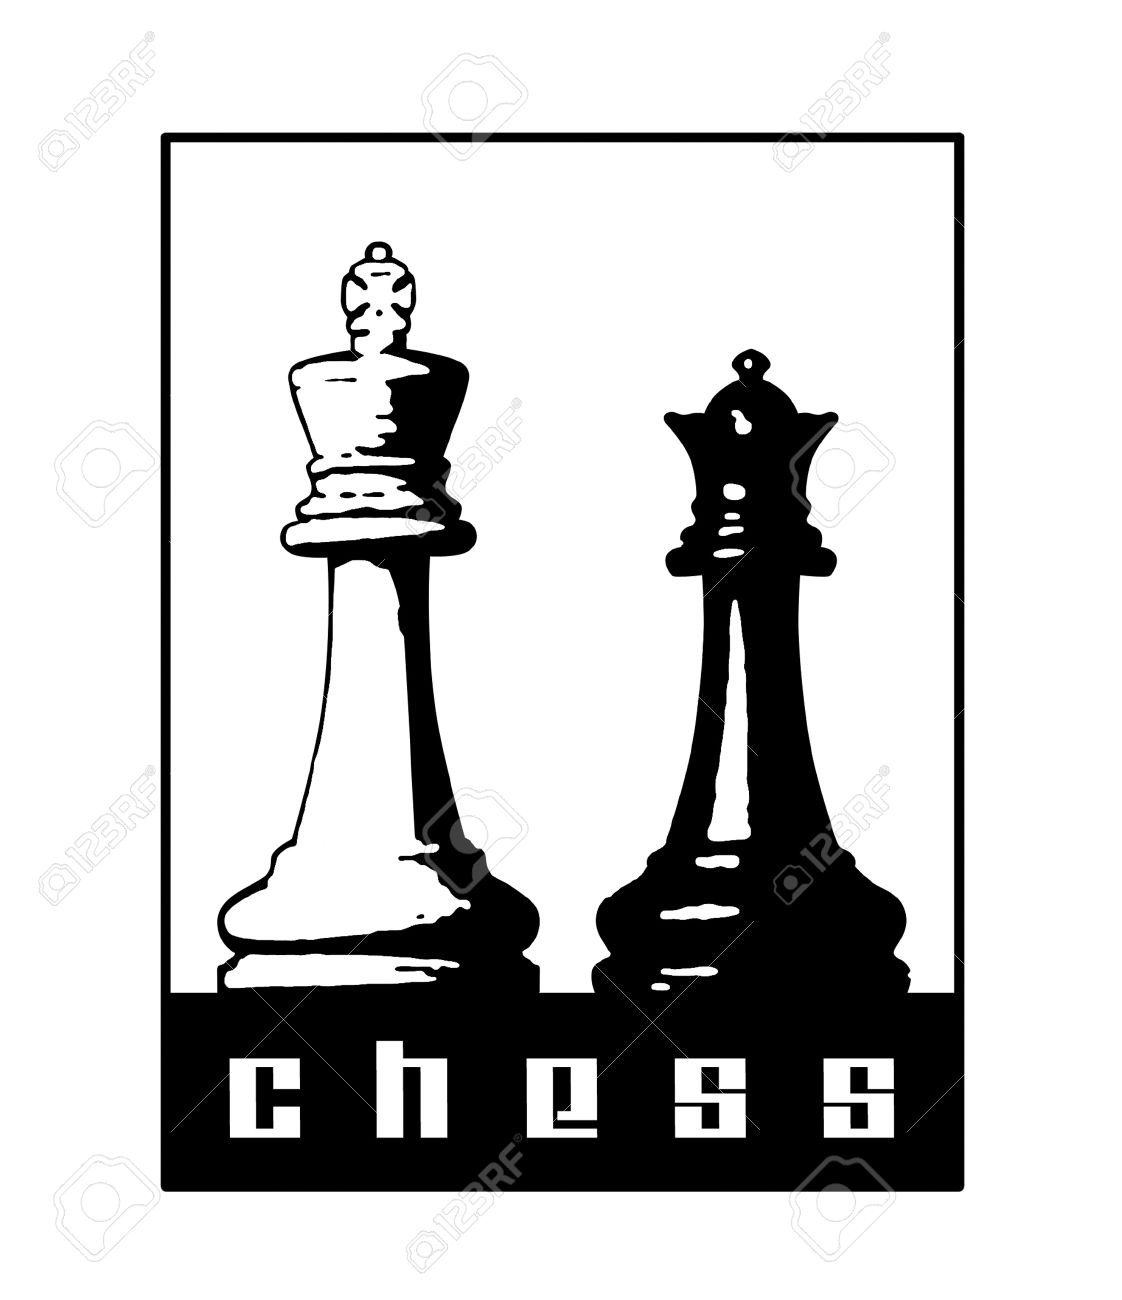 Chess symbol with king and queen pieces. - 8434232